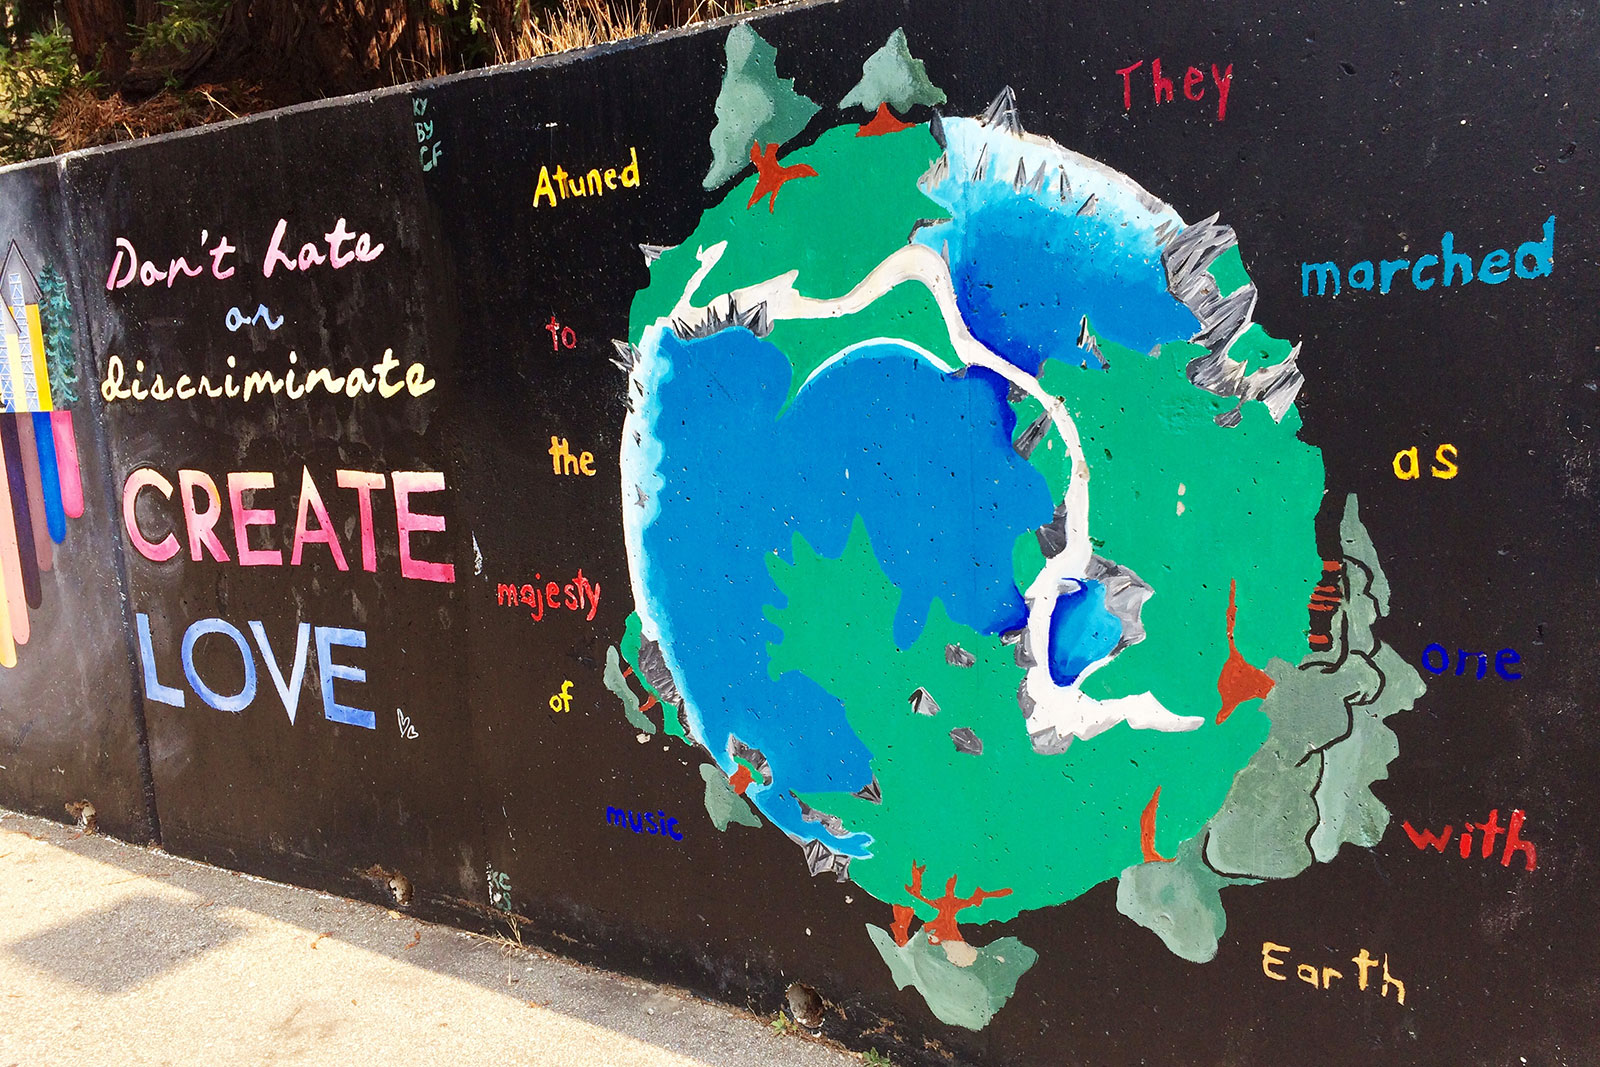 Mural with planet earth and different love messages